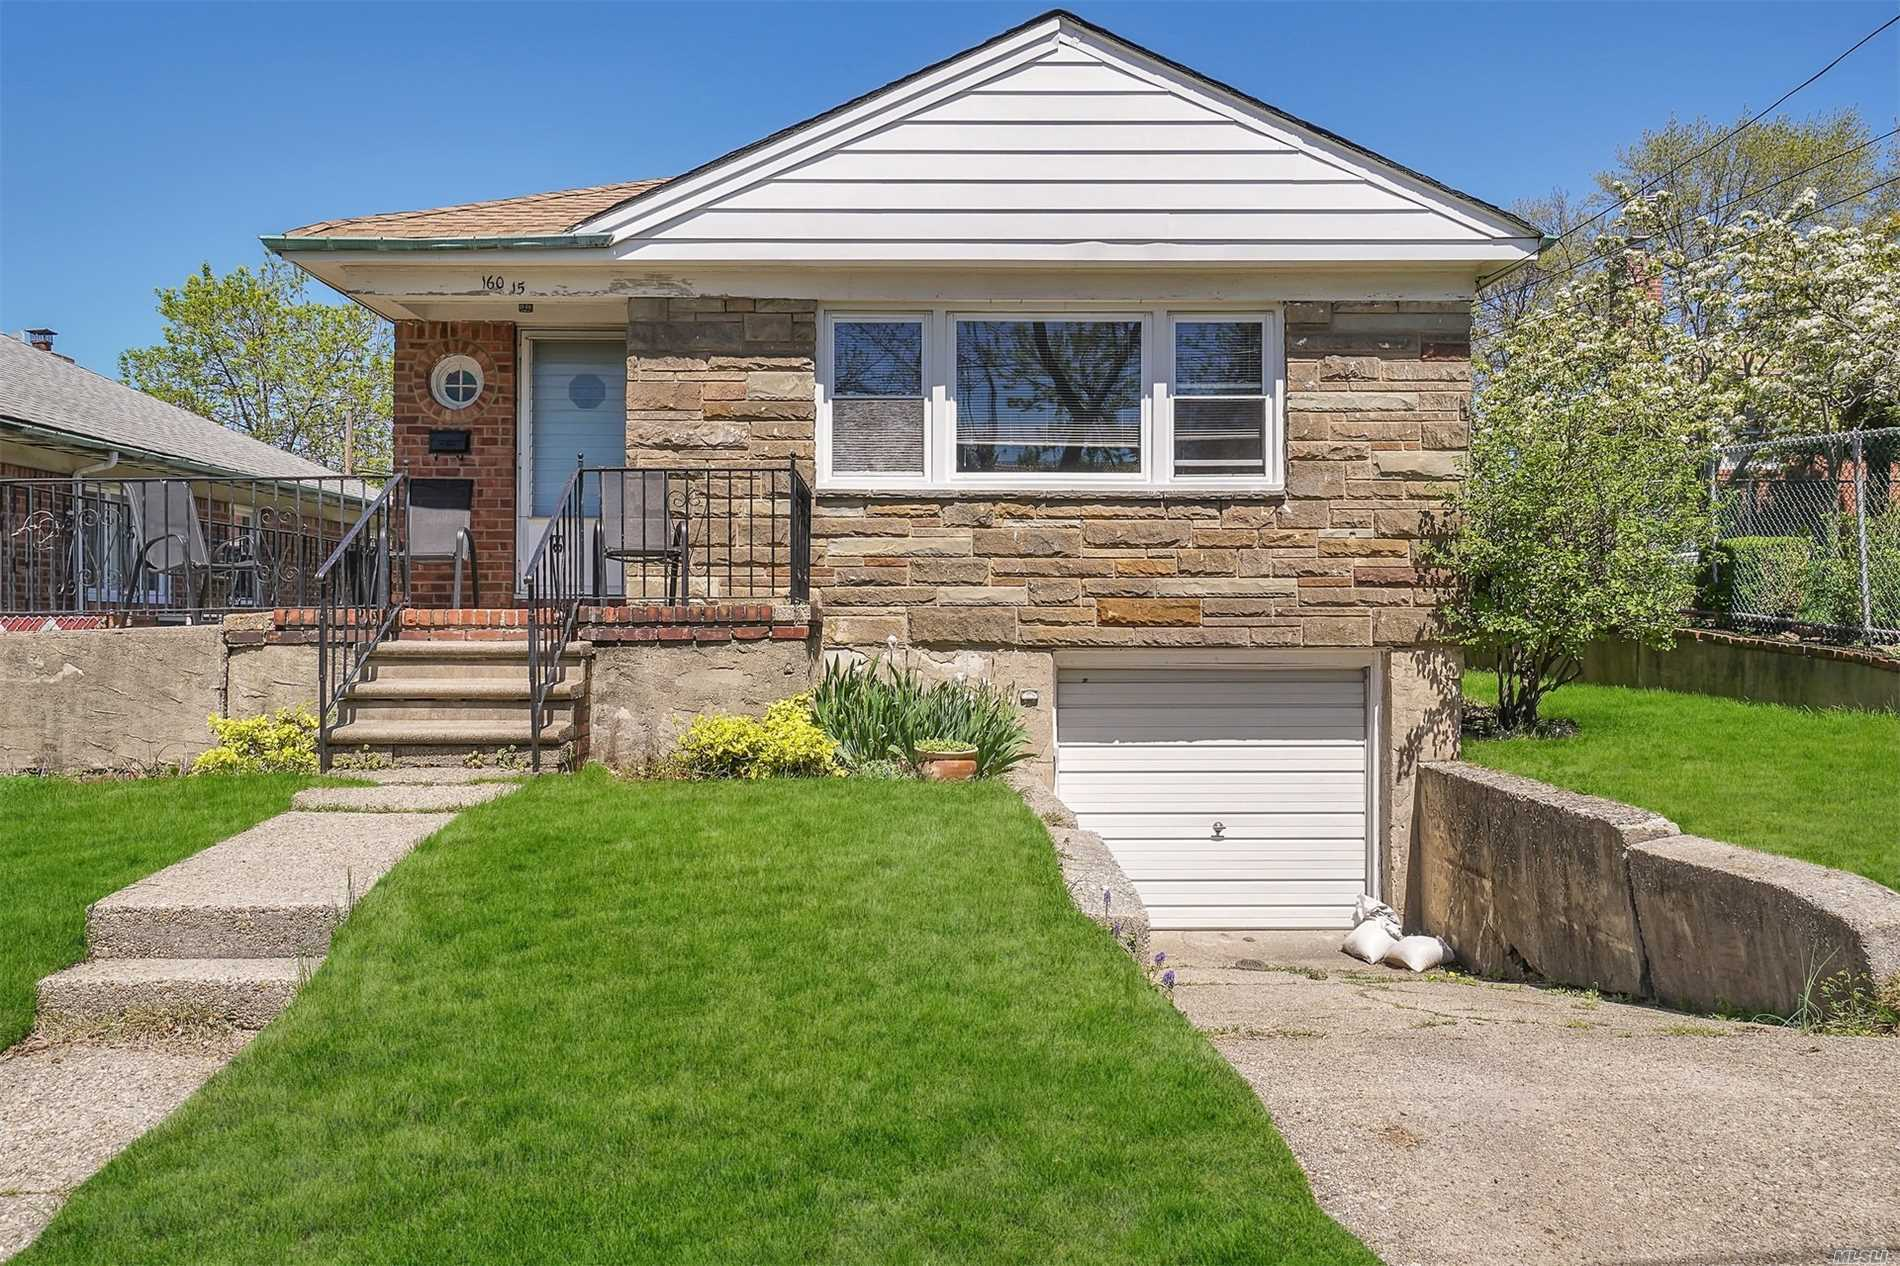 This Whitestone Detached Brick Raised Ranch House Offers Large Bedrooms and Living Areas, Hardwood Floors Throughout, a Basement with High Ceiling and a Private Driveway and Garage. Close to All.